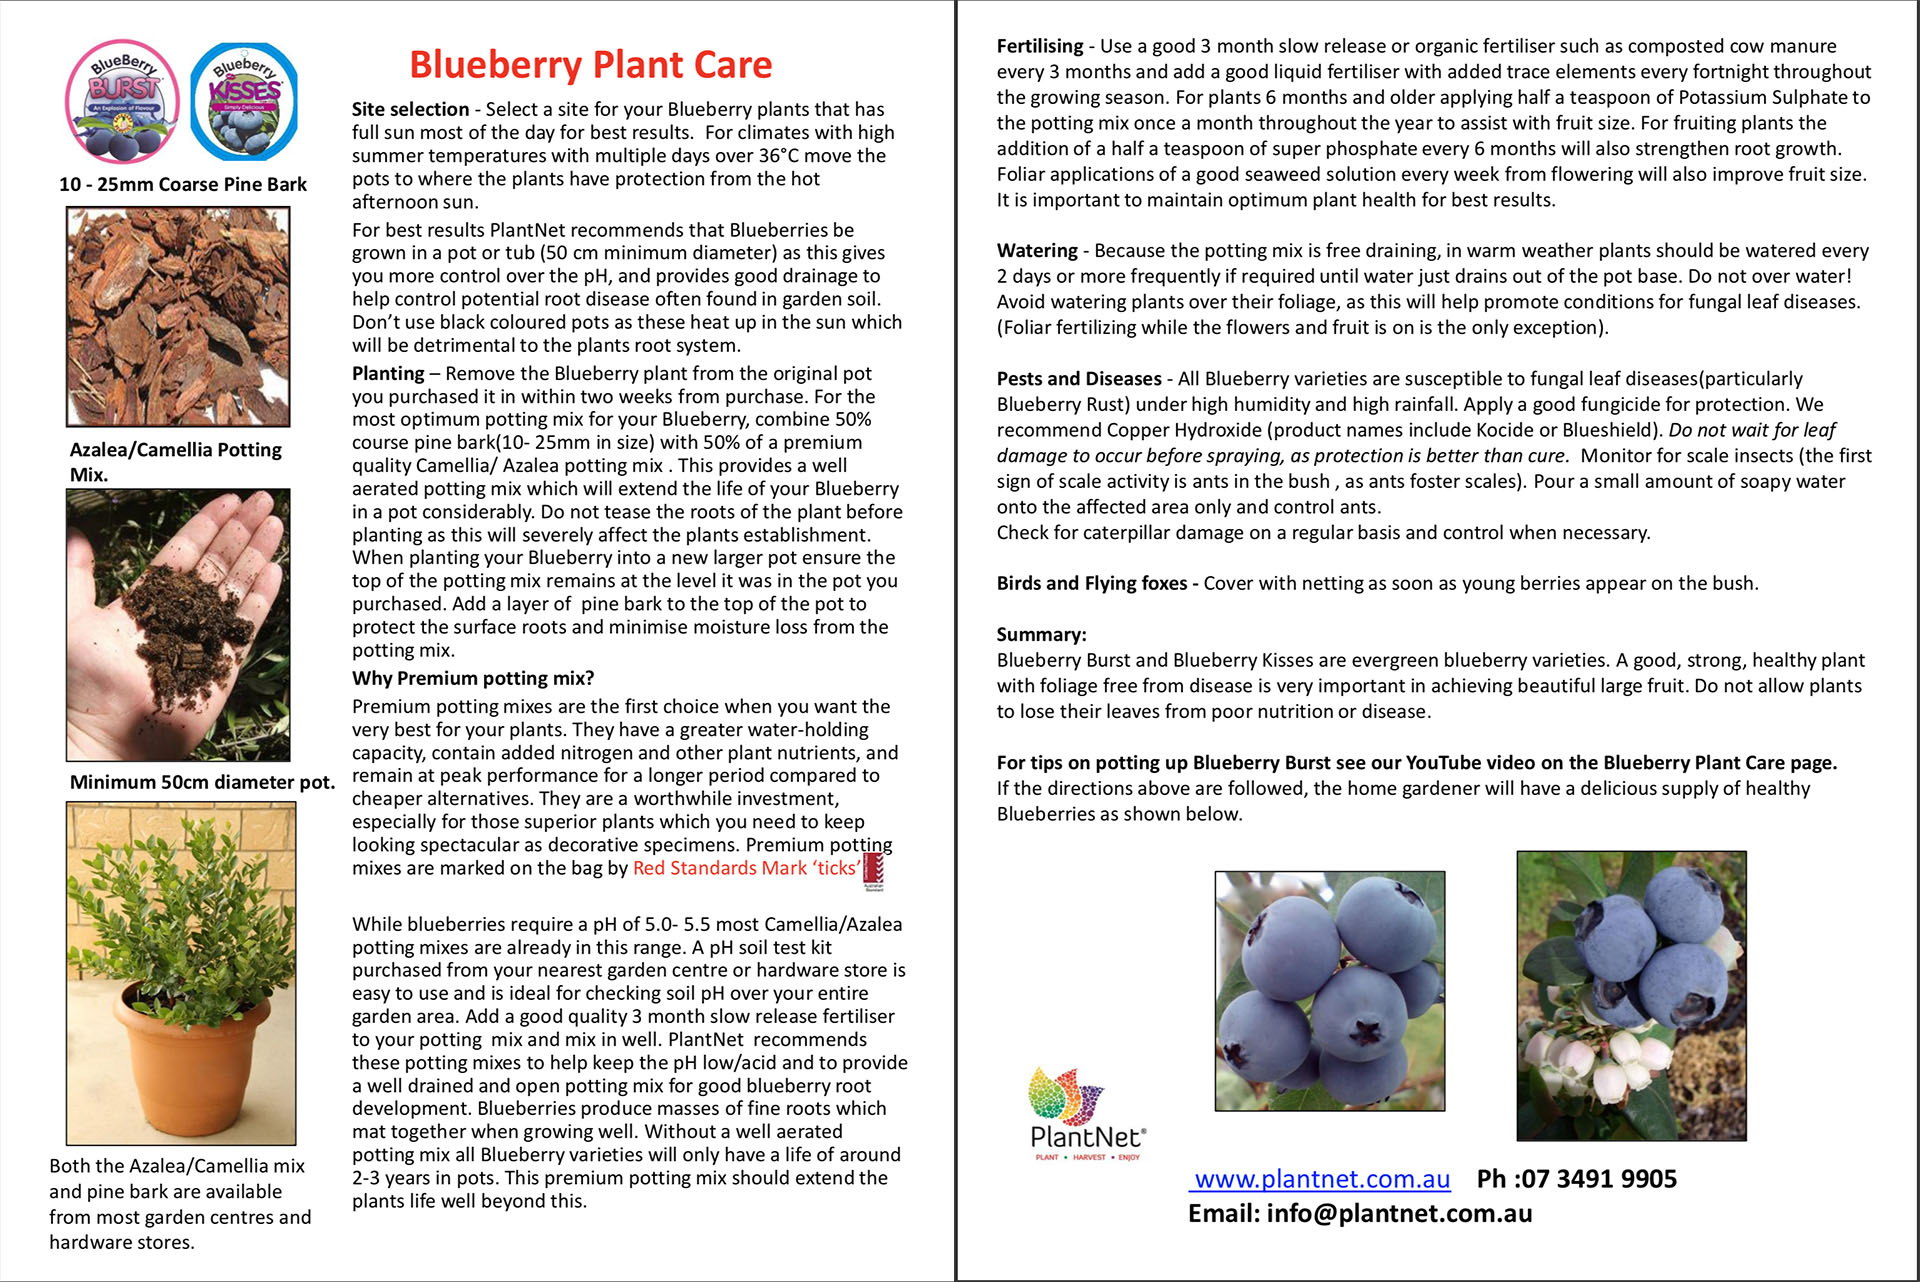 Blueberry Burst Plant Care Information Sheet